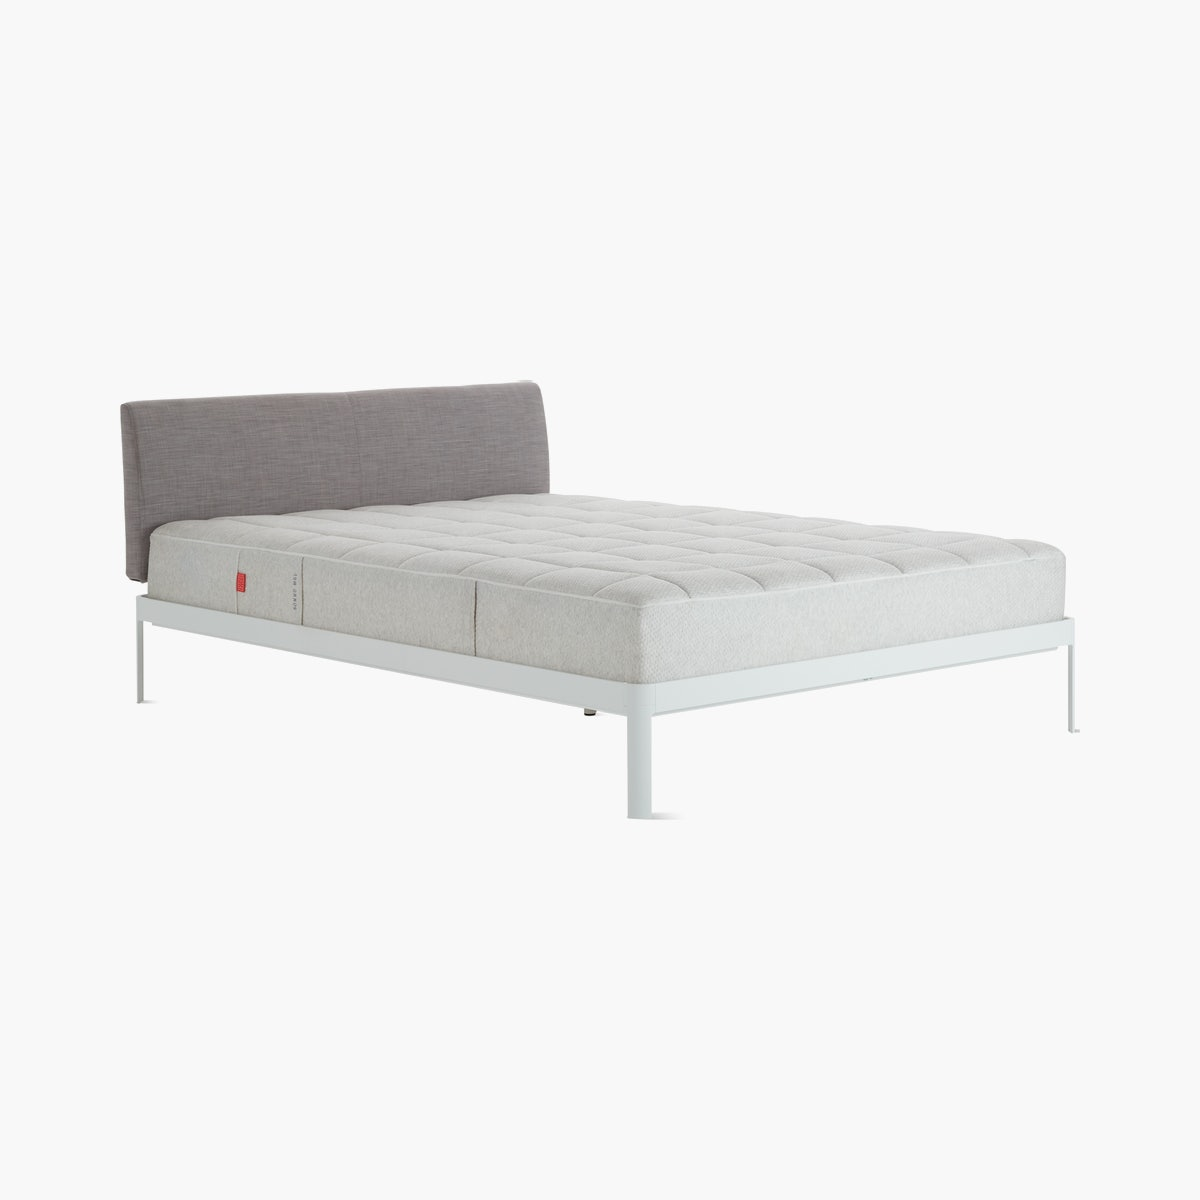 Sonno MGV Mattress